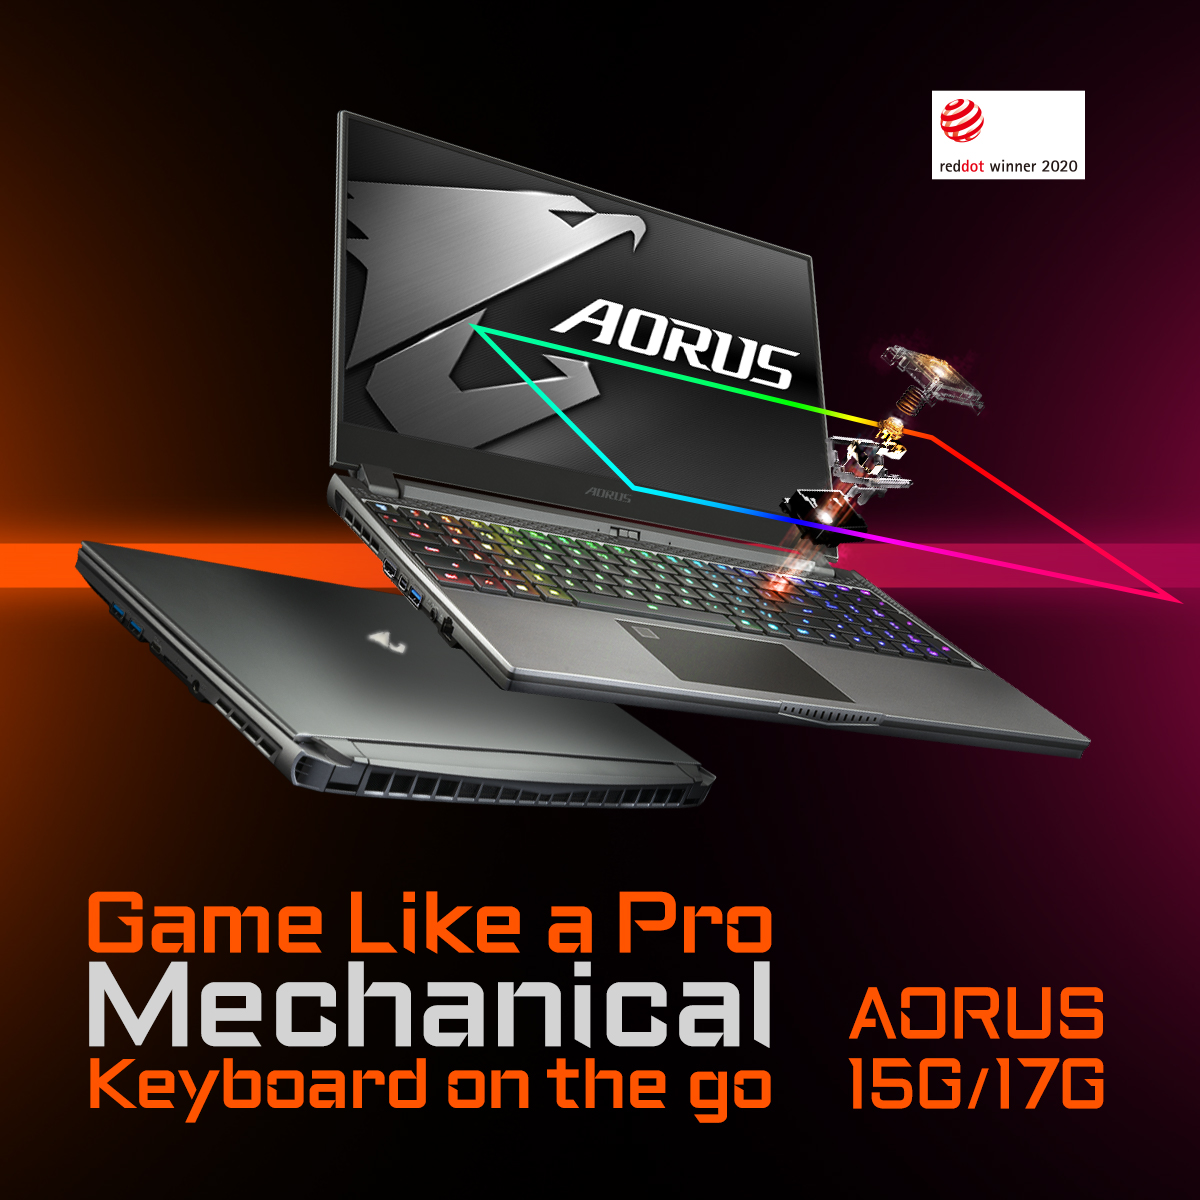 AORUS is gonna redefine the gaming laptop!   AORUS 15G: https://bit.ly/2xqNLa8   AORUS 17G: https://bit.ly/39mzp83                                                                                          #aorus #aorusgaming #aorus17G #aorus15G #gaming #laptoppic.twitter.com/pMzCKFpVWg